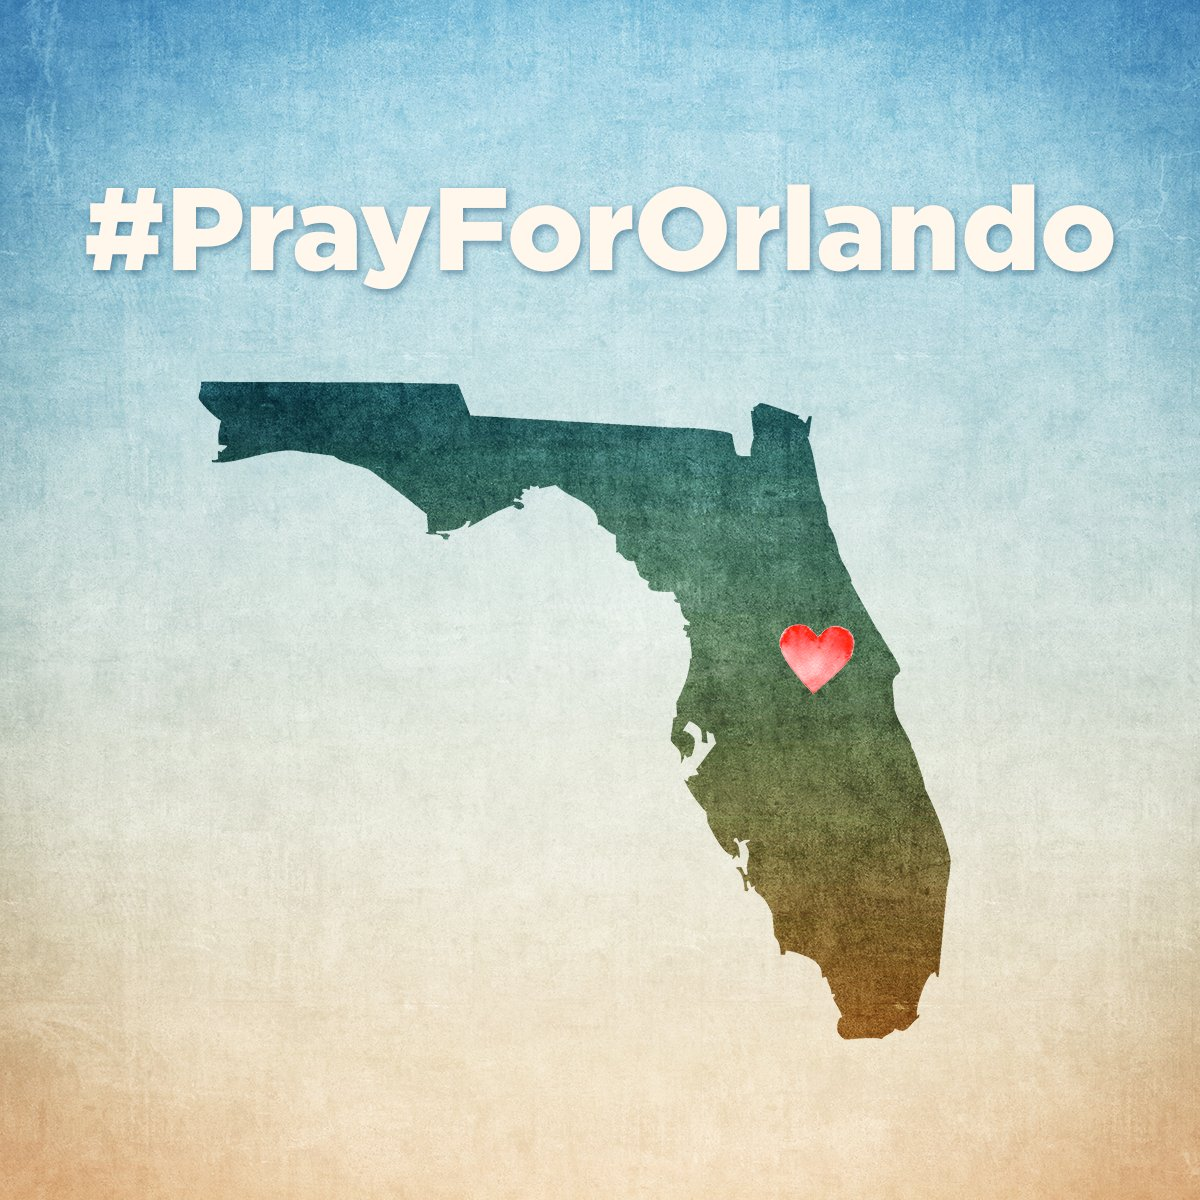 Oh Lord Jesus, comfort those who are grieving and mourning today. #PrayForOrlando https://t.co/m3GCIGVgku